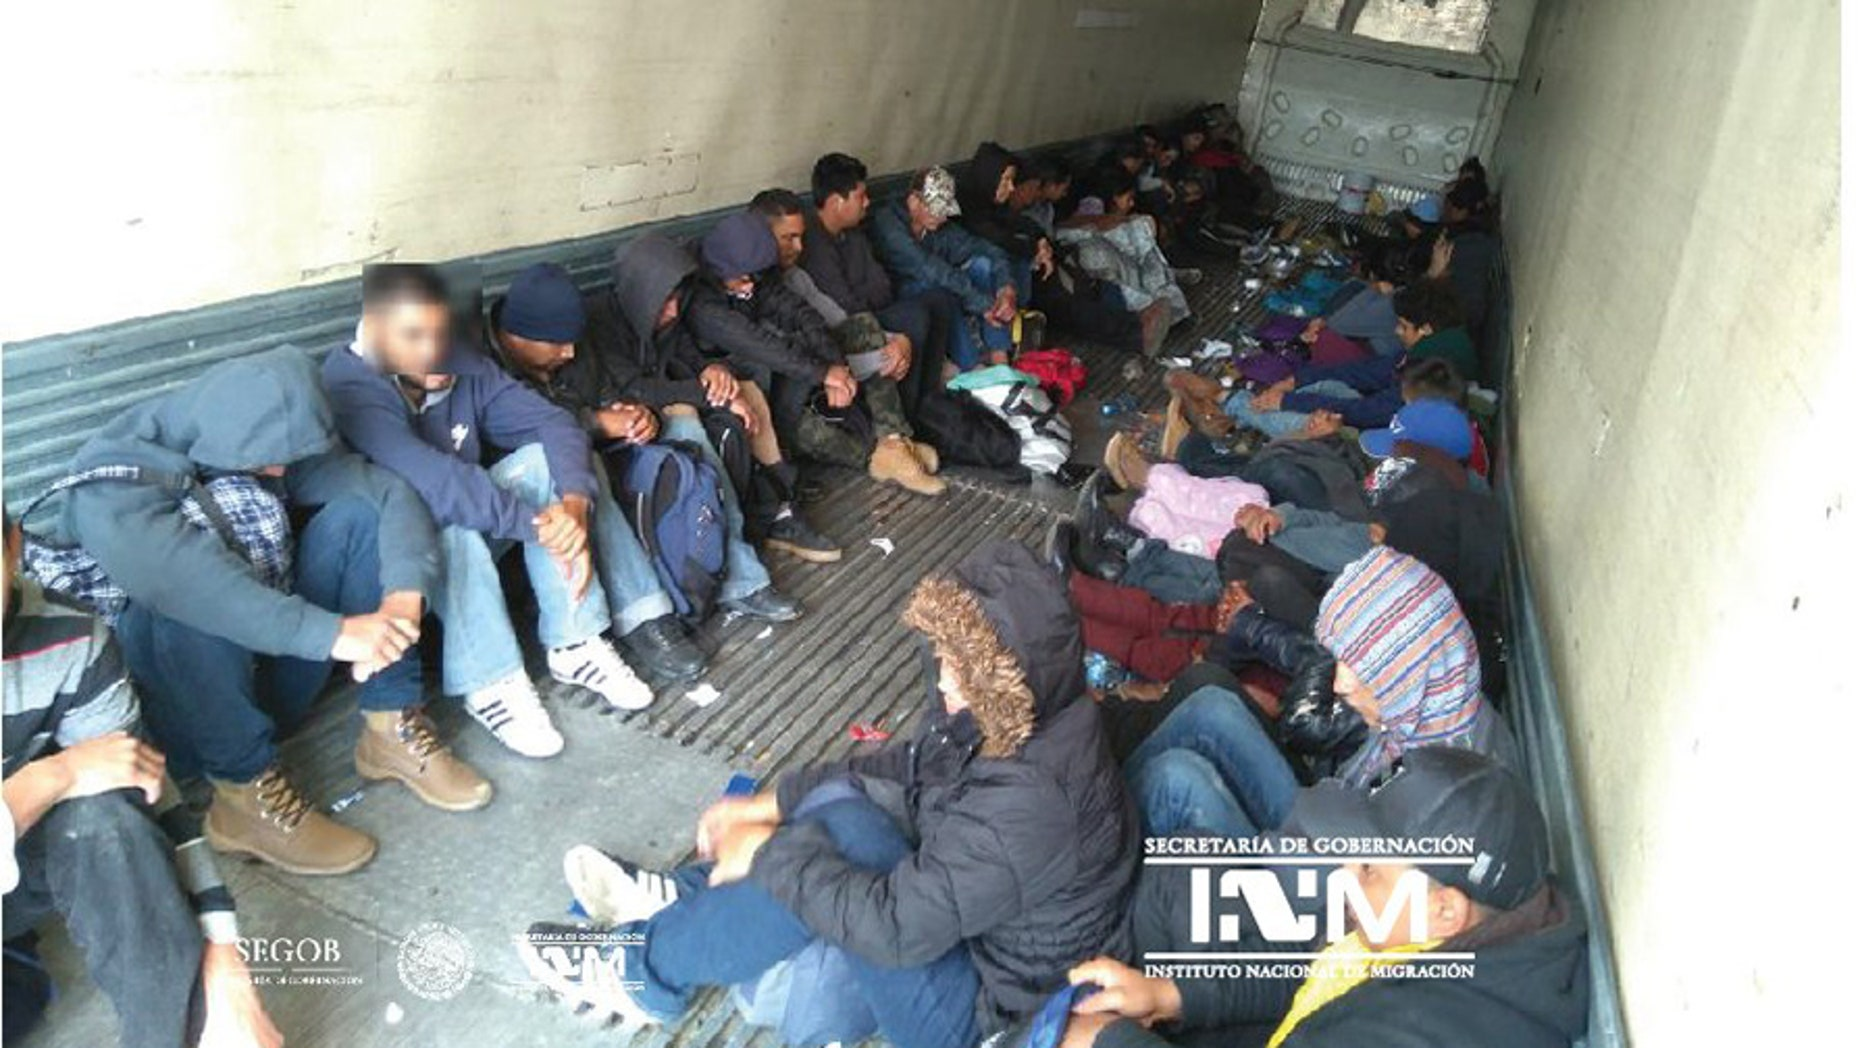 Mexican officials say they found 103 Central American migrants in a freight trailer abandoned near the U.S.-Mexico border.